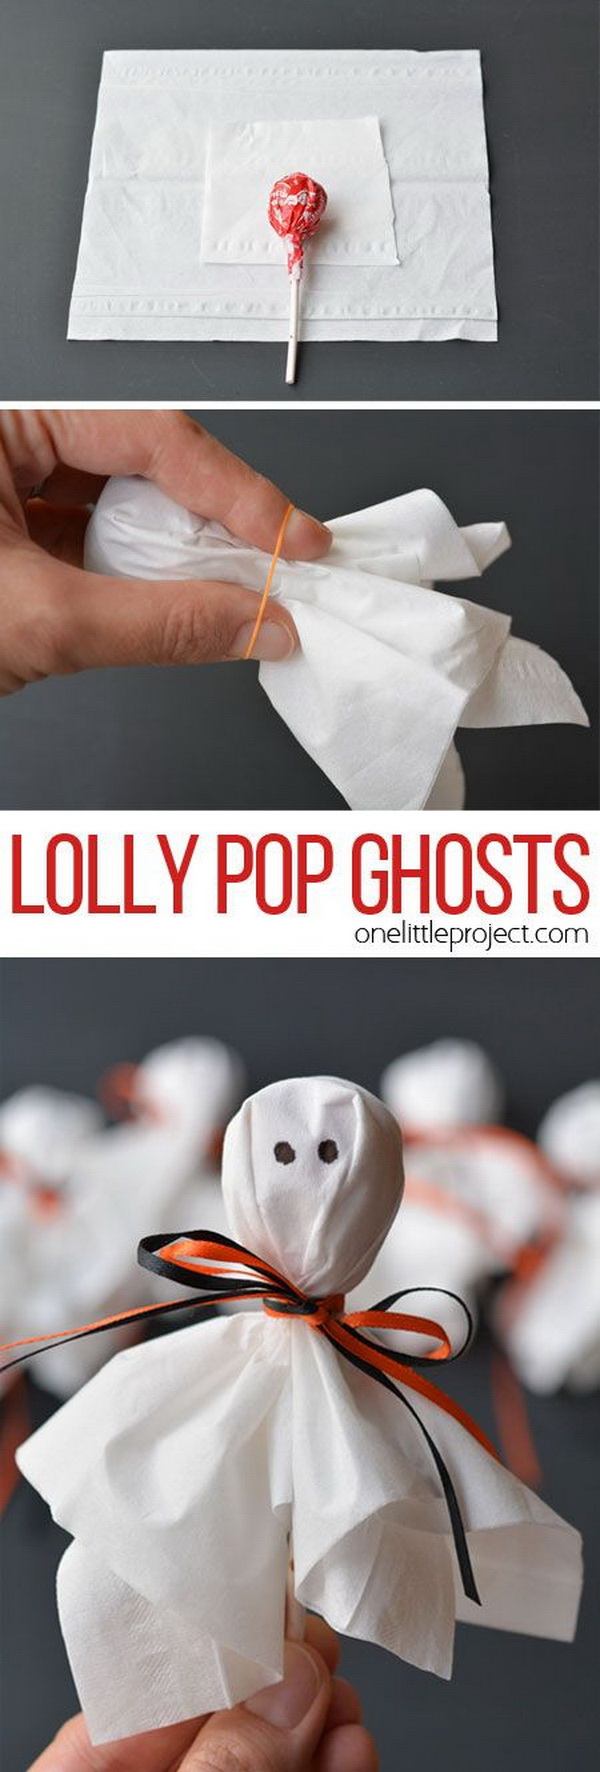 Lolly Pop Ghosts. These cute lolly pop ghosts are super easy and make a fun treat for a Halloween party or to send to school on Halloween!